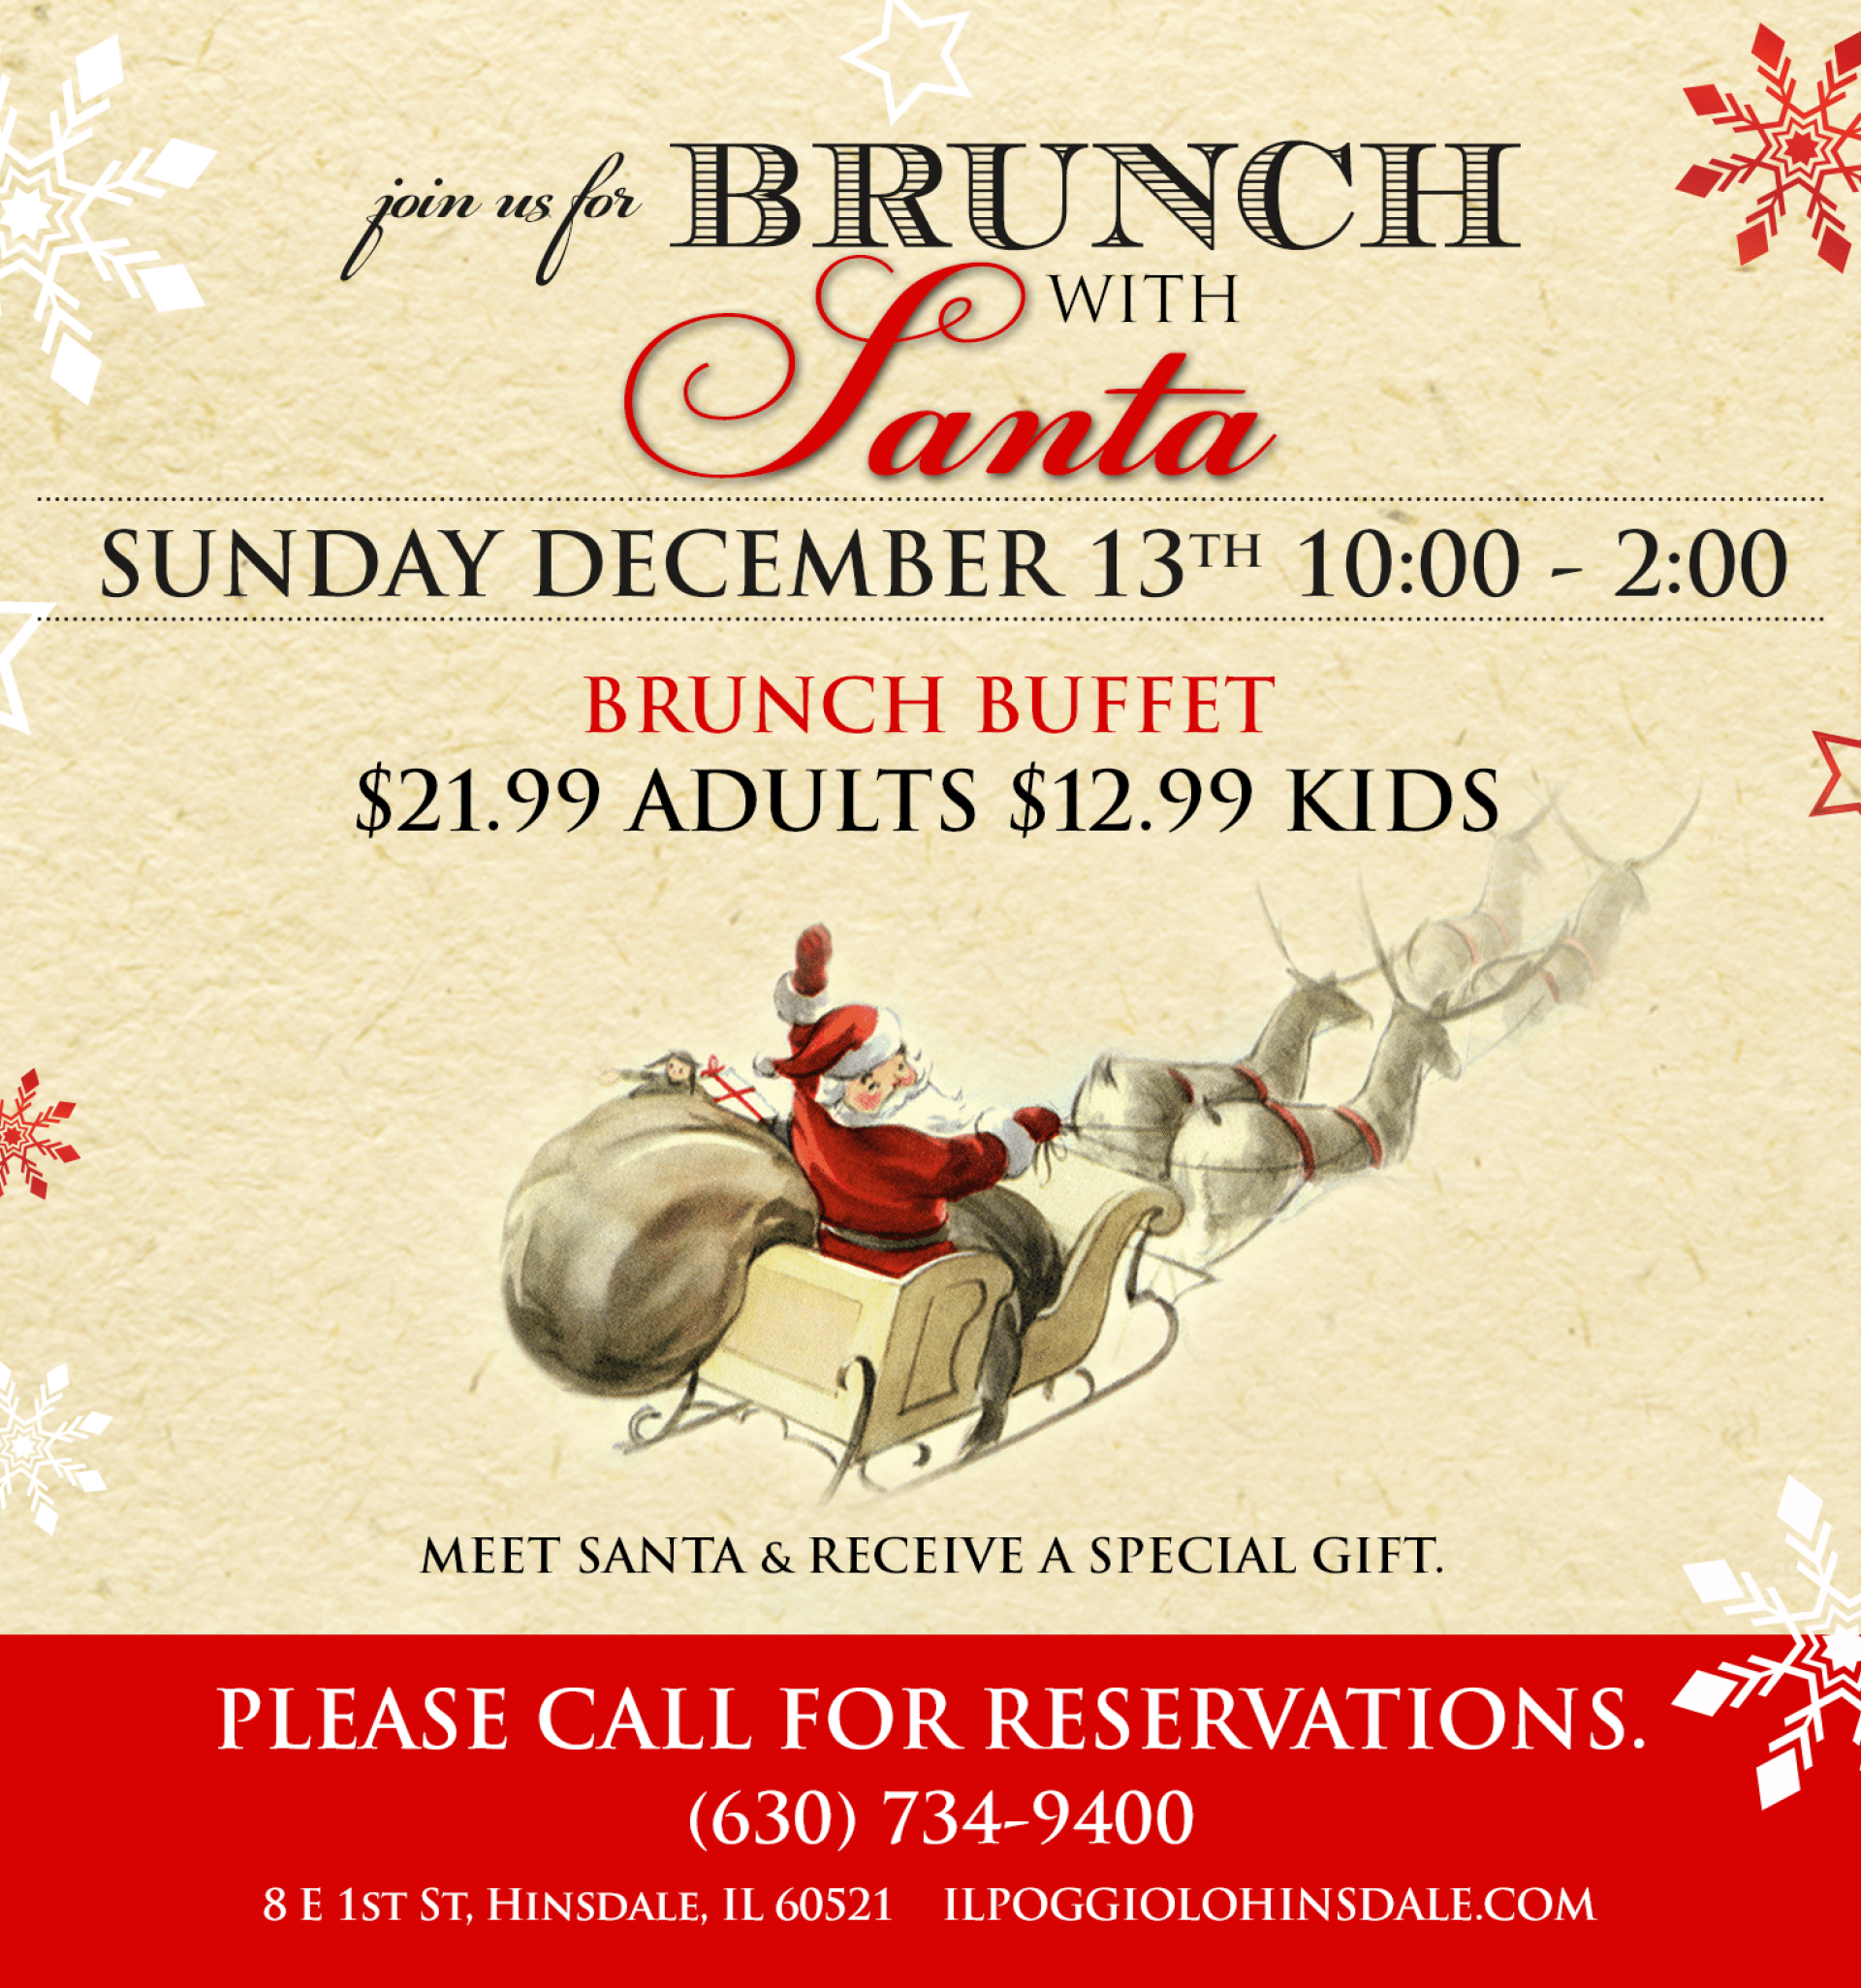 Brunch with Santa on Sunday, December 13th 10:00 AM - 2:00 PM.